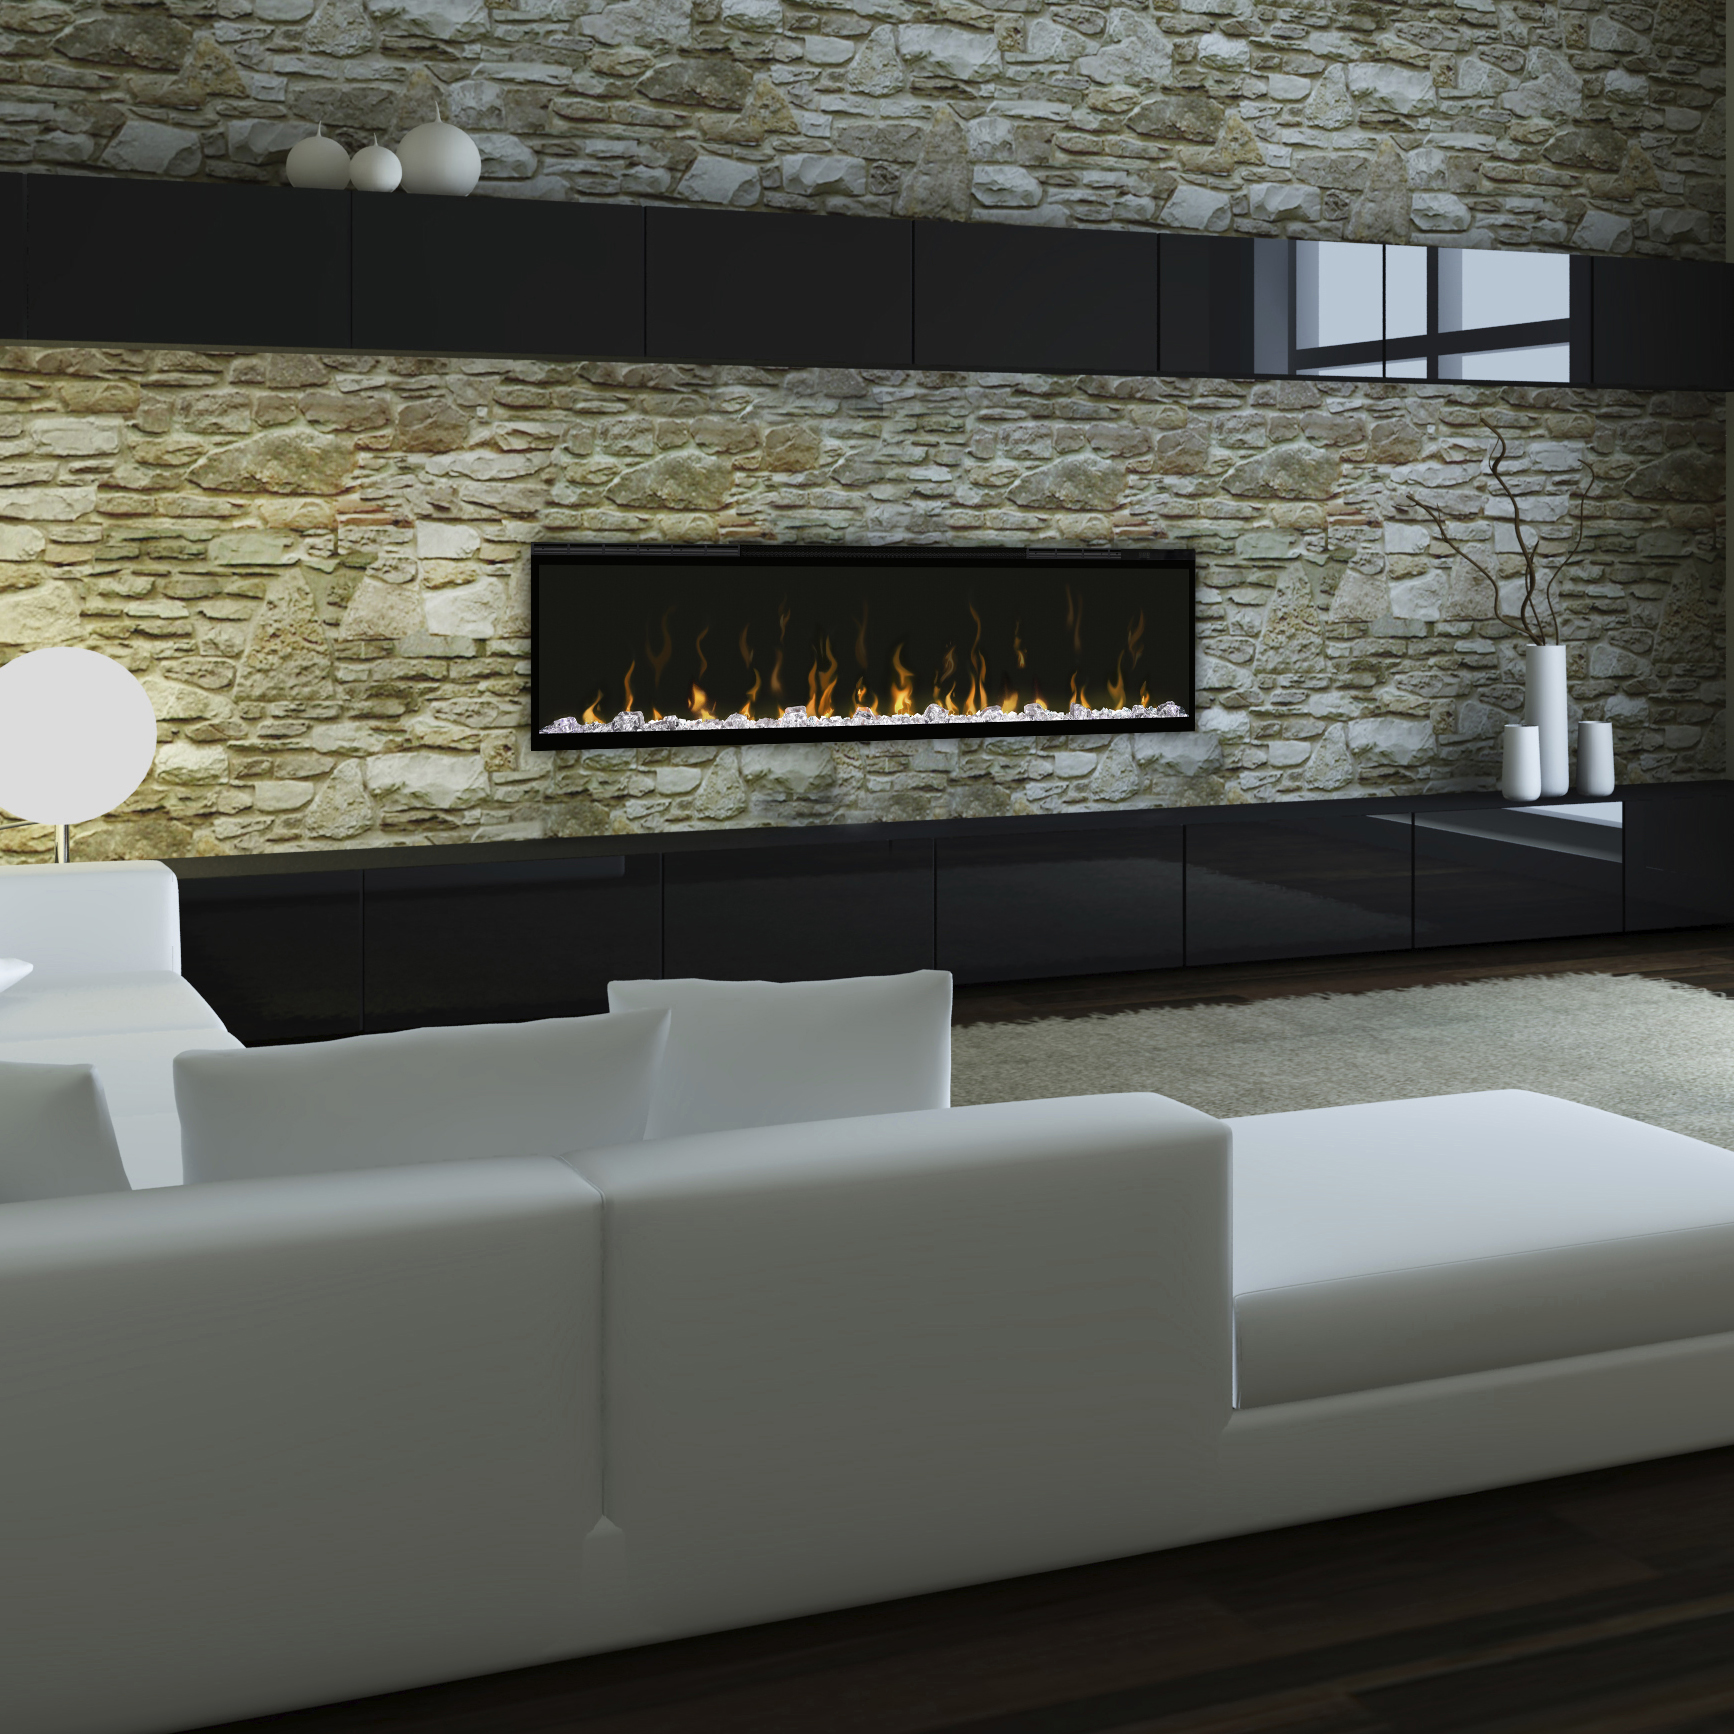 Ignite 50 Dimplex Wall Mounted Fireplace in a Modern Home